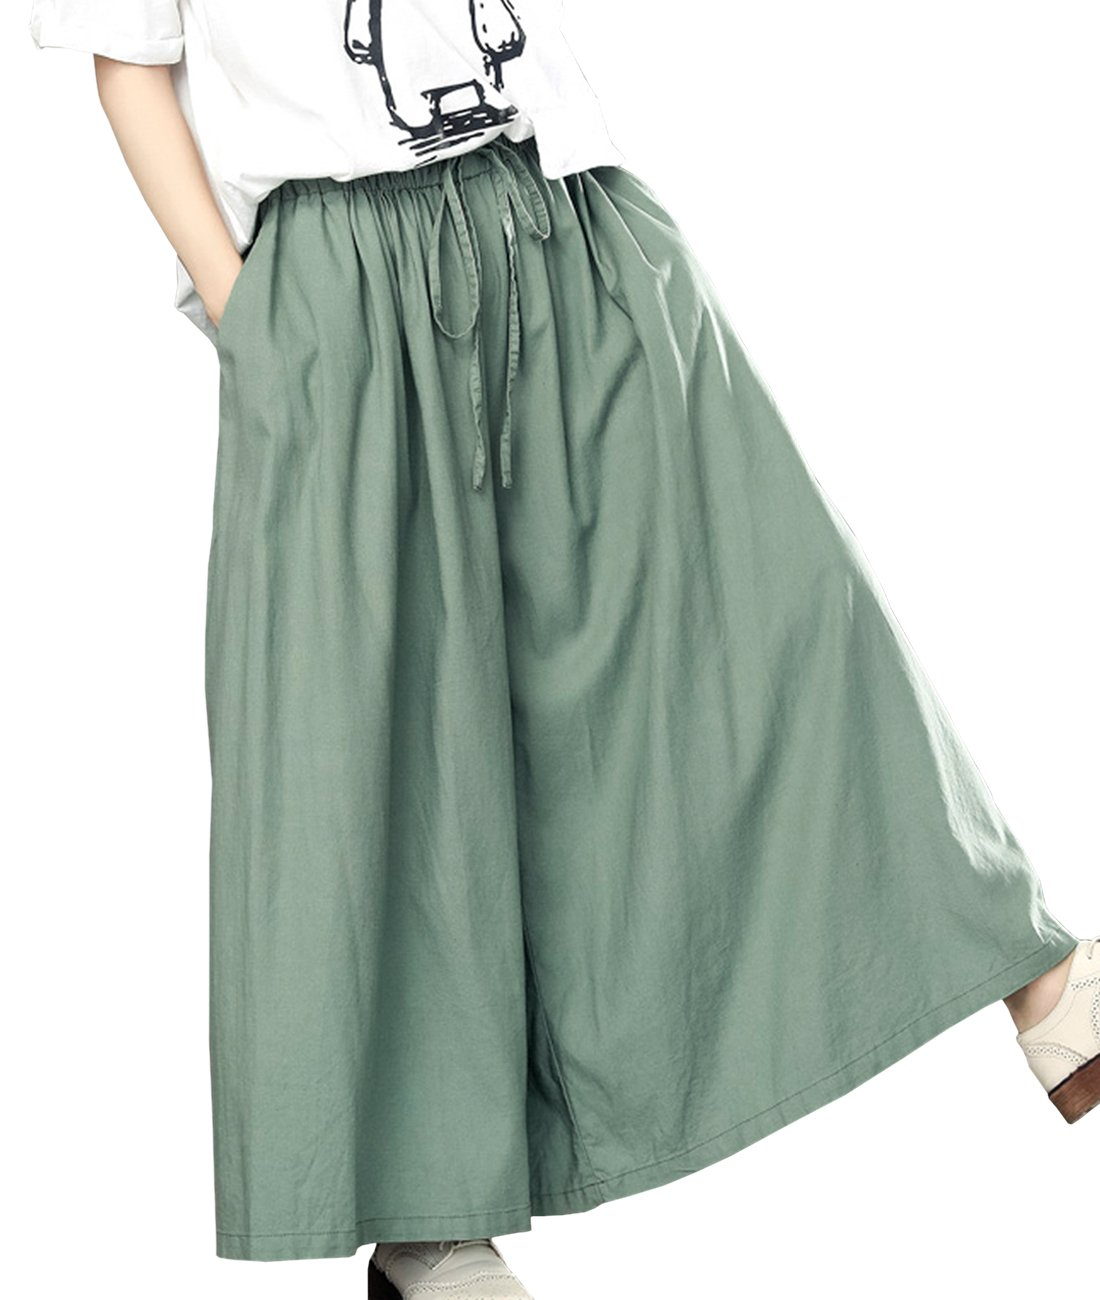 YESNO P75 Women Casual Loose Fit Pants Skirts Linen Wide Leg Low Crotch Pockets